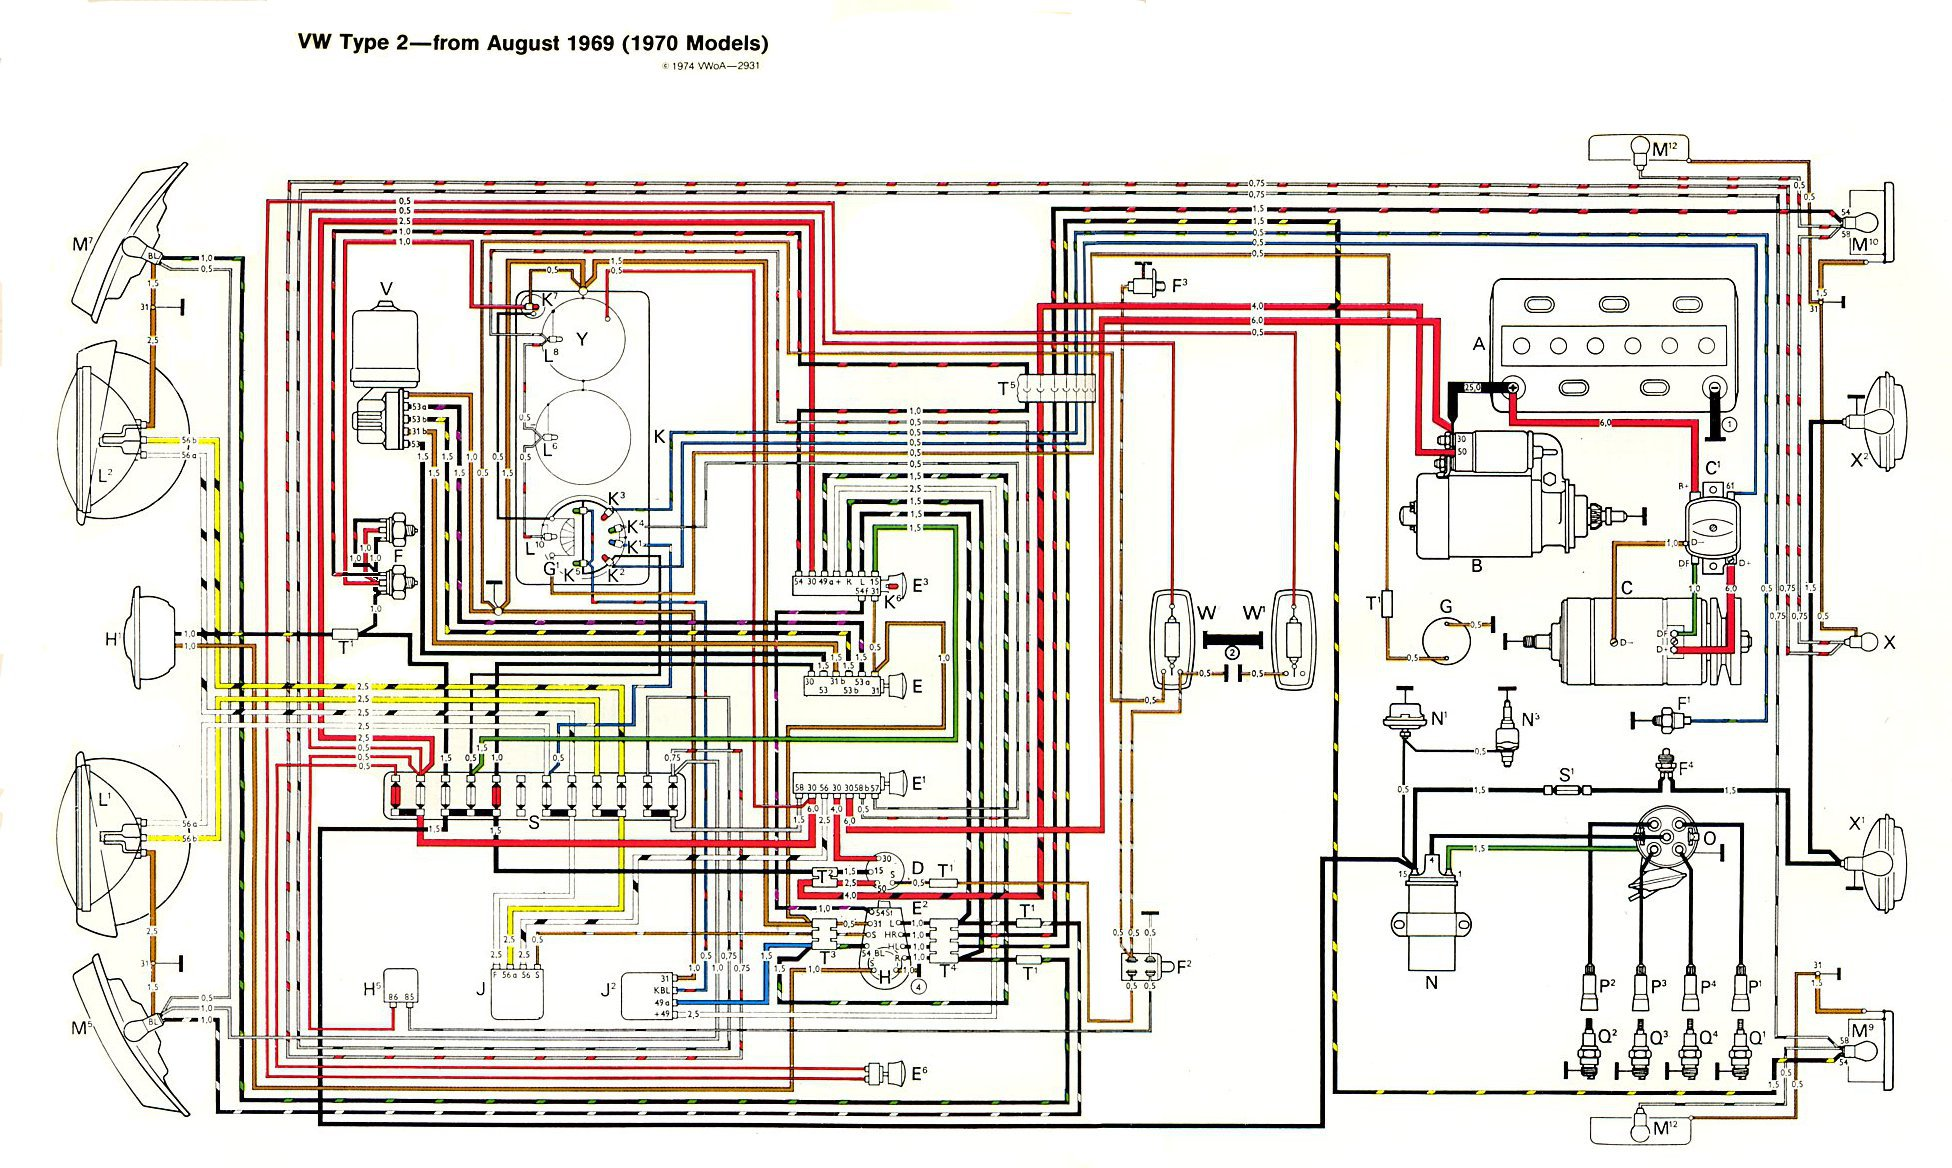 baybus_70 thesamba com type 2 wiring diagrams 1970 vw bug wiring diagram at eliteediting.co